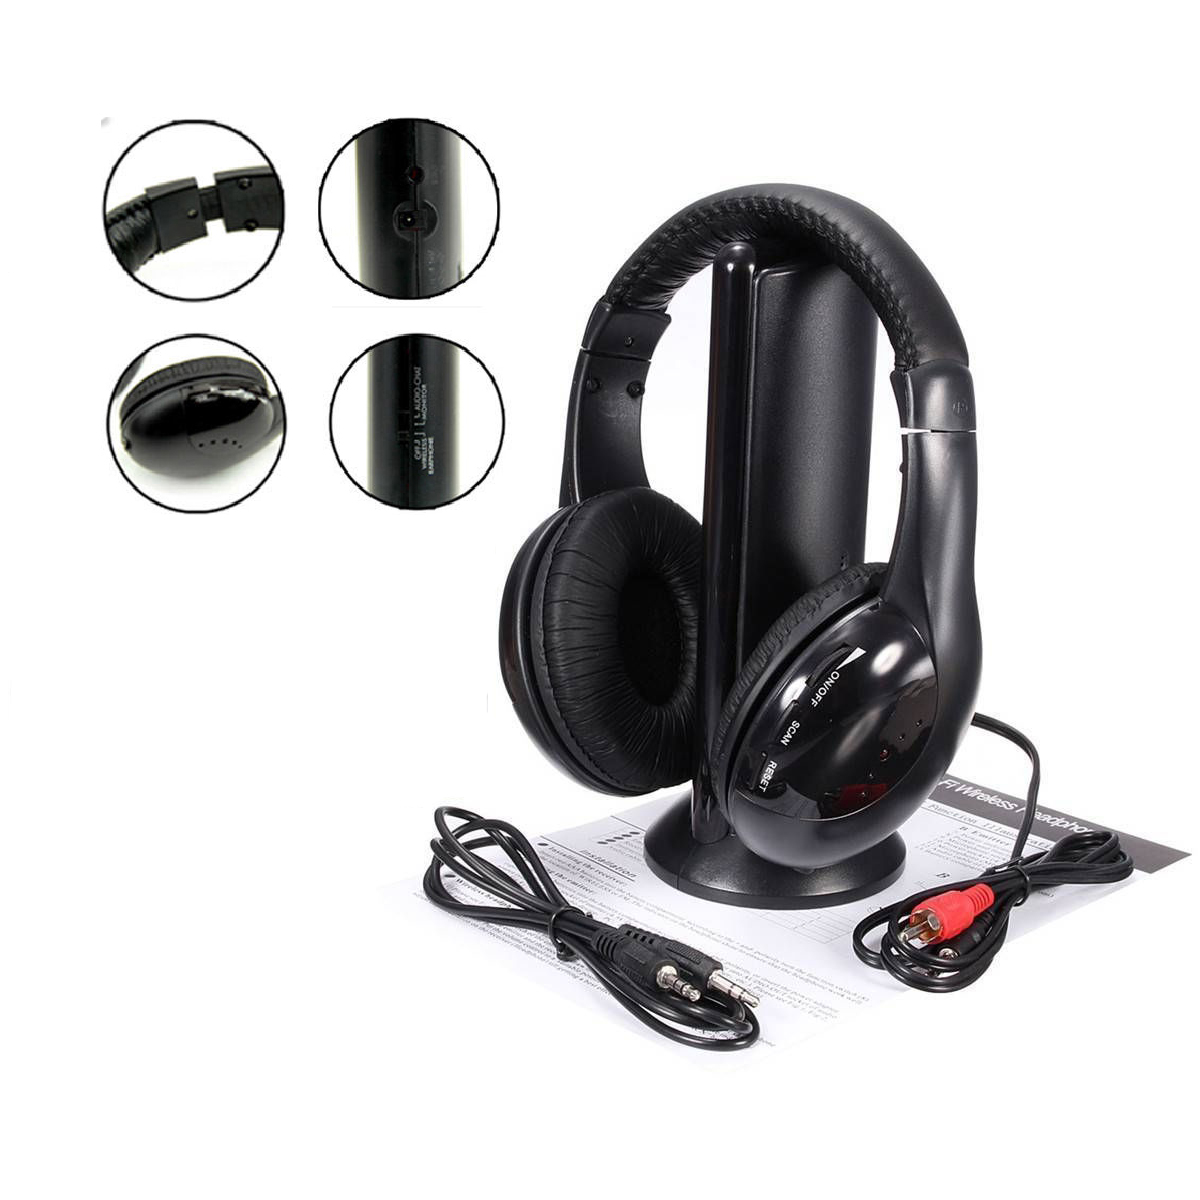 Hot 5 in 1 Hi-Fi Wireless Headset Headphone Earphone for TV DVD MP3 PC